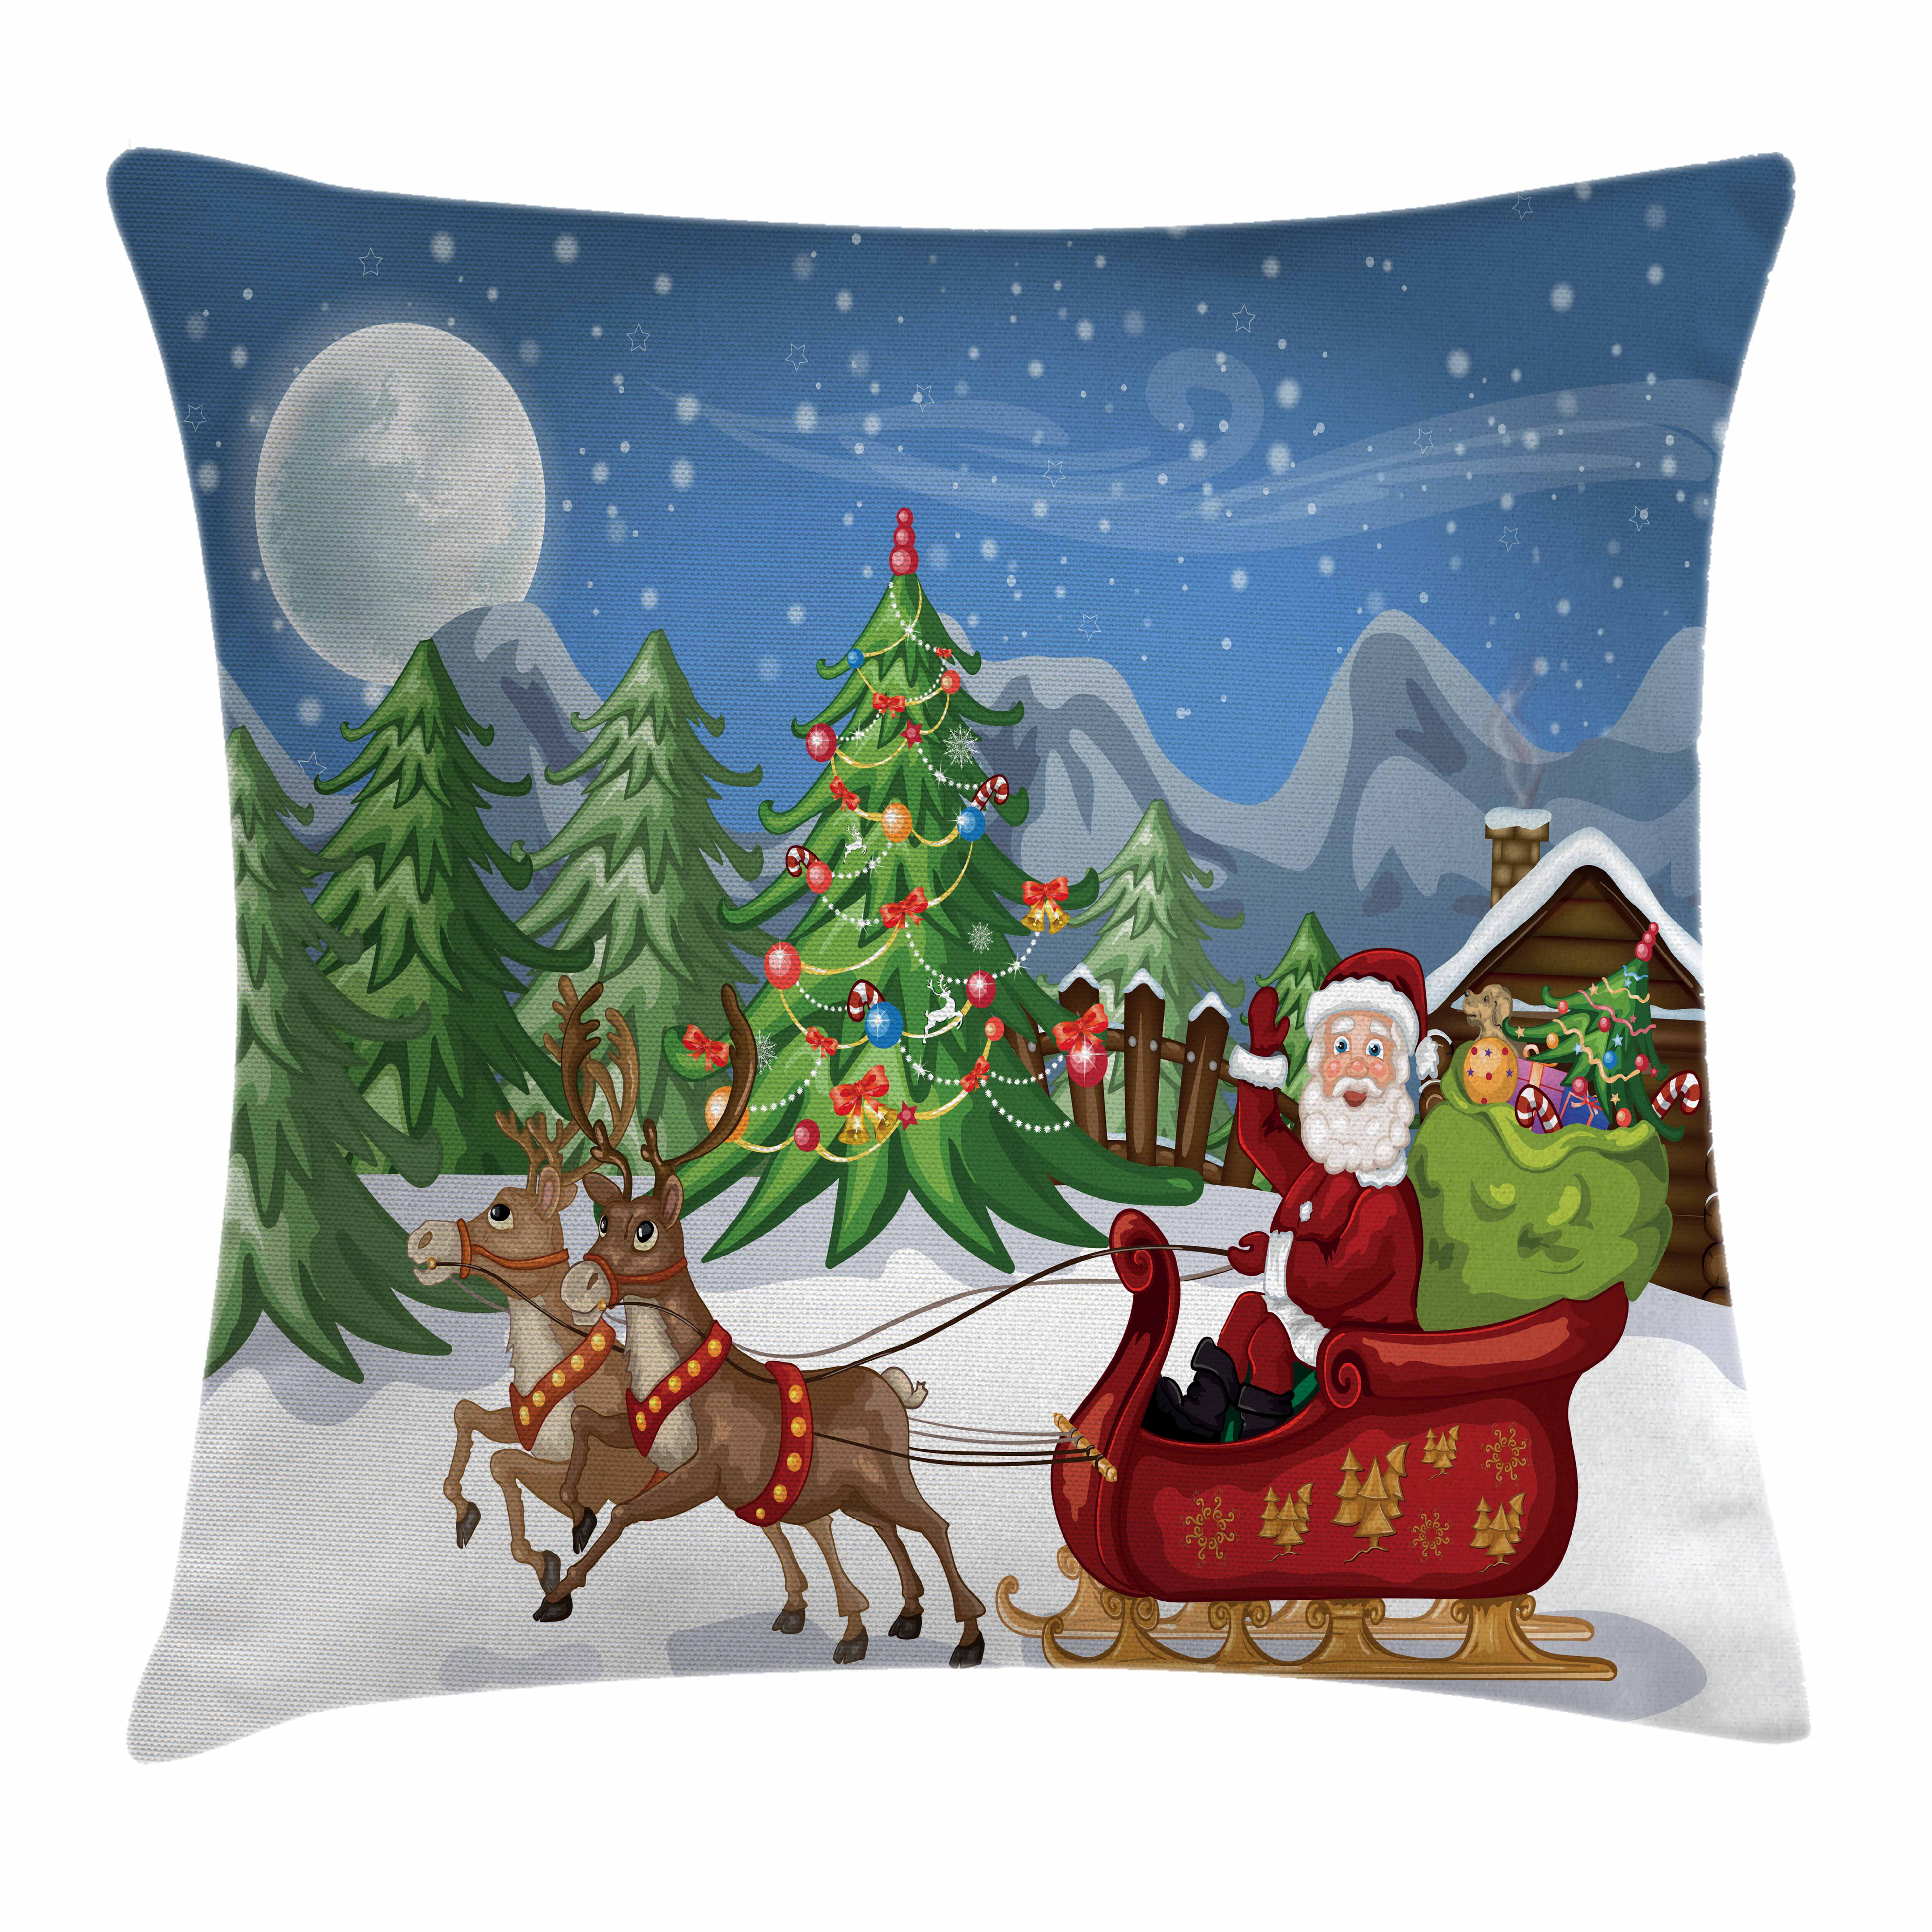 Christmas Throw Pillow Cushion Cover, Country Landscape at Night with Trees Santa Claus Snowdrift Reindeers Mountains, Decorative Square Accent Pillow Case, 18 X 18 Inches, Multicolor, by Ambesonne